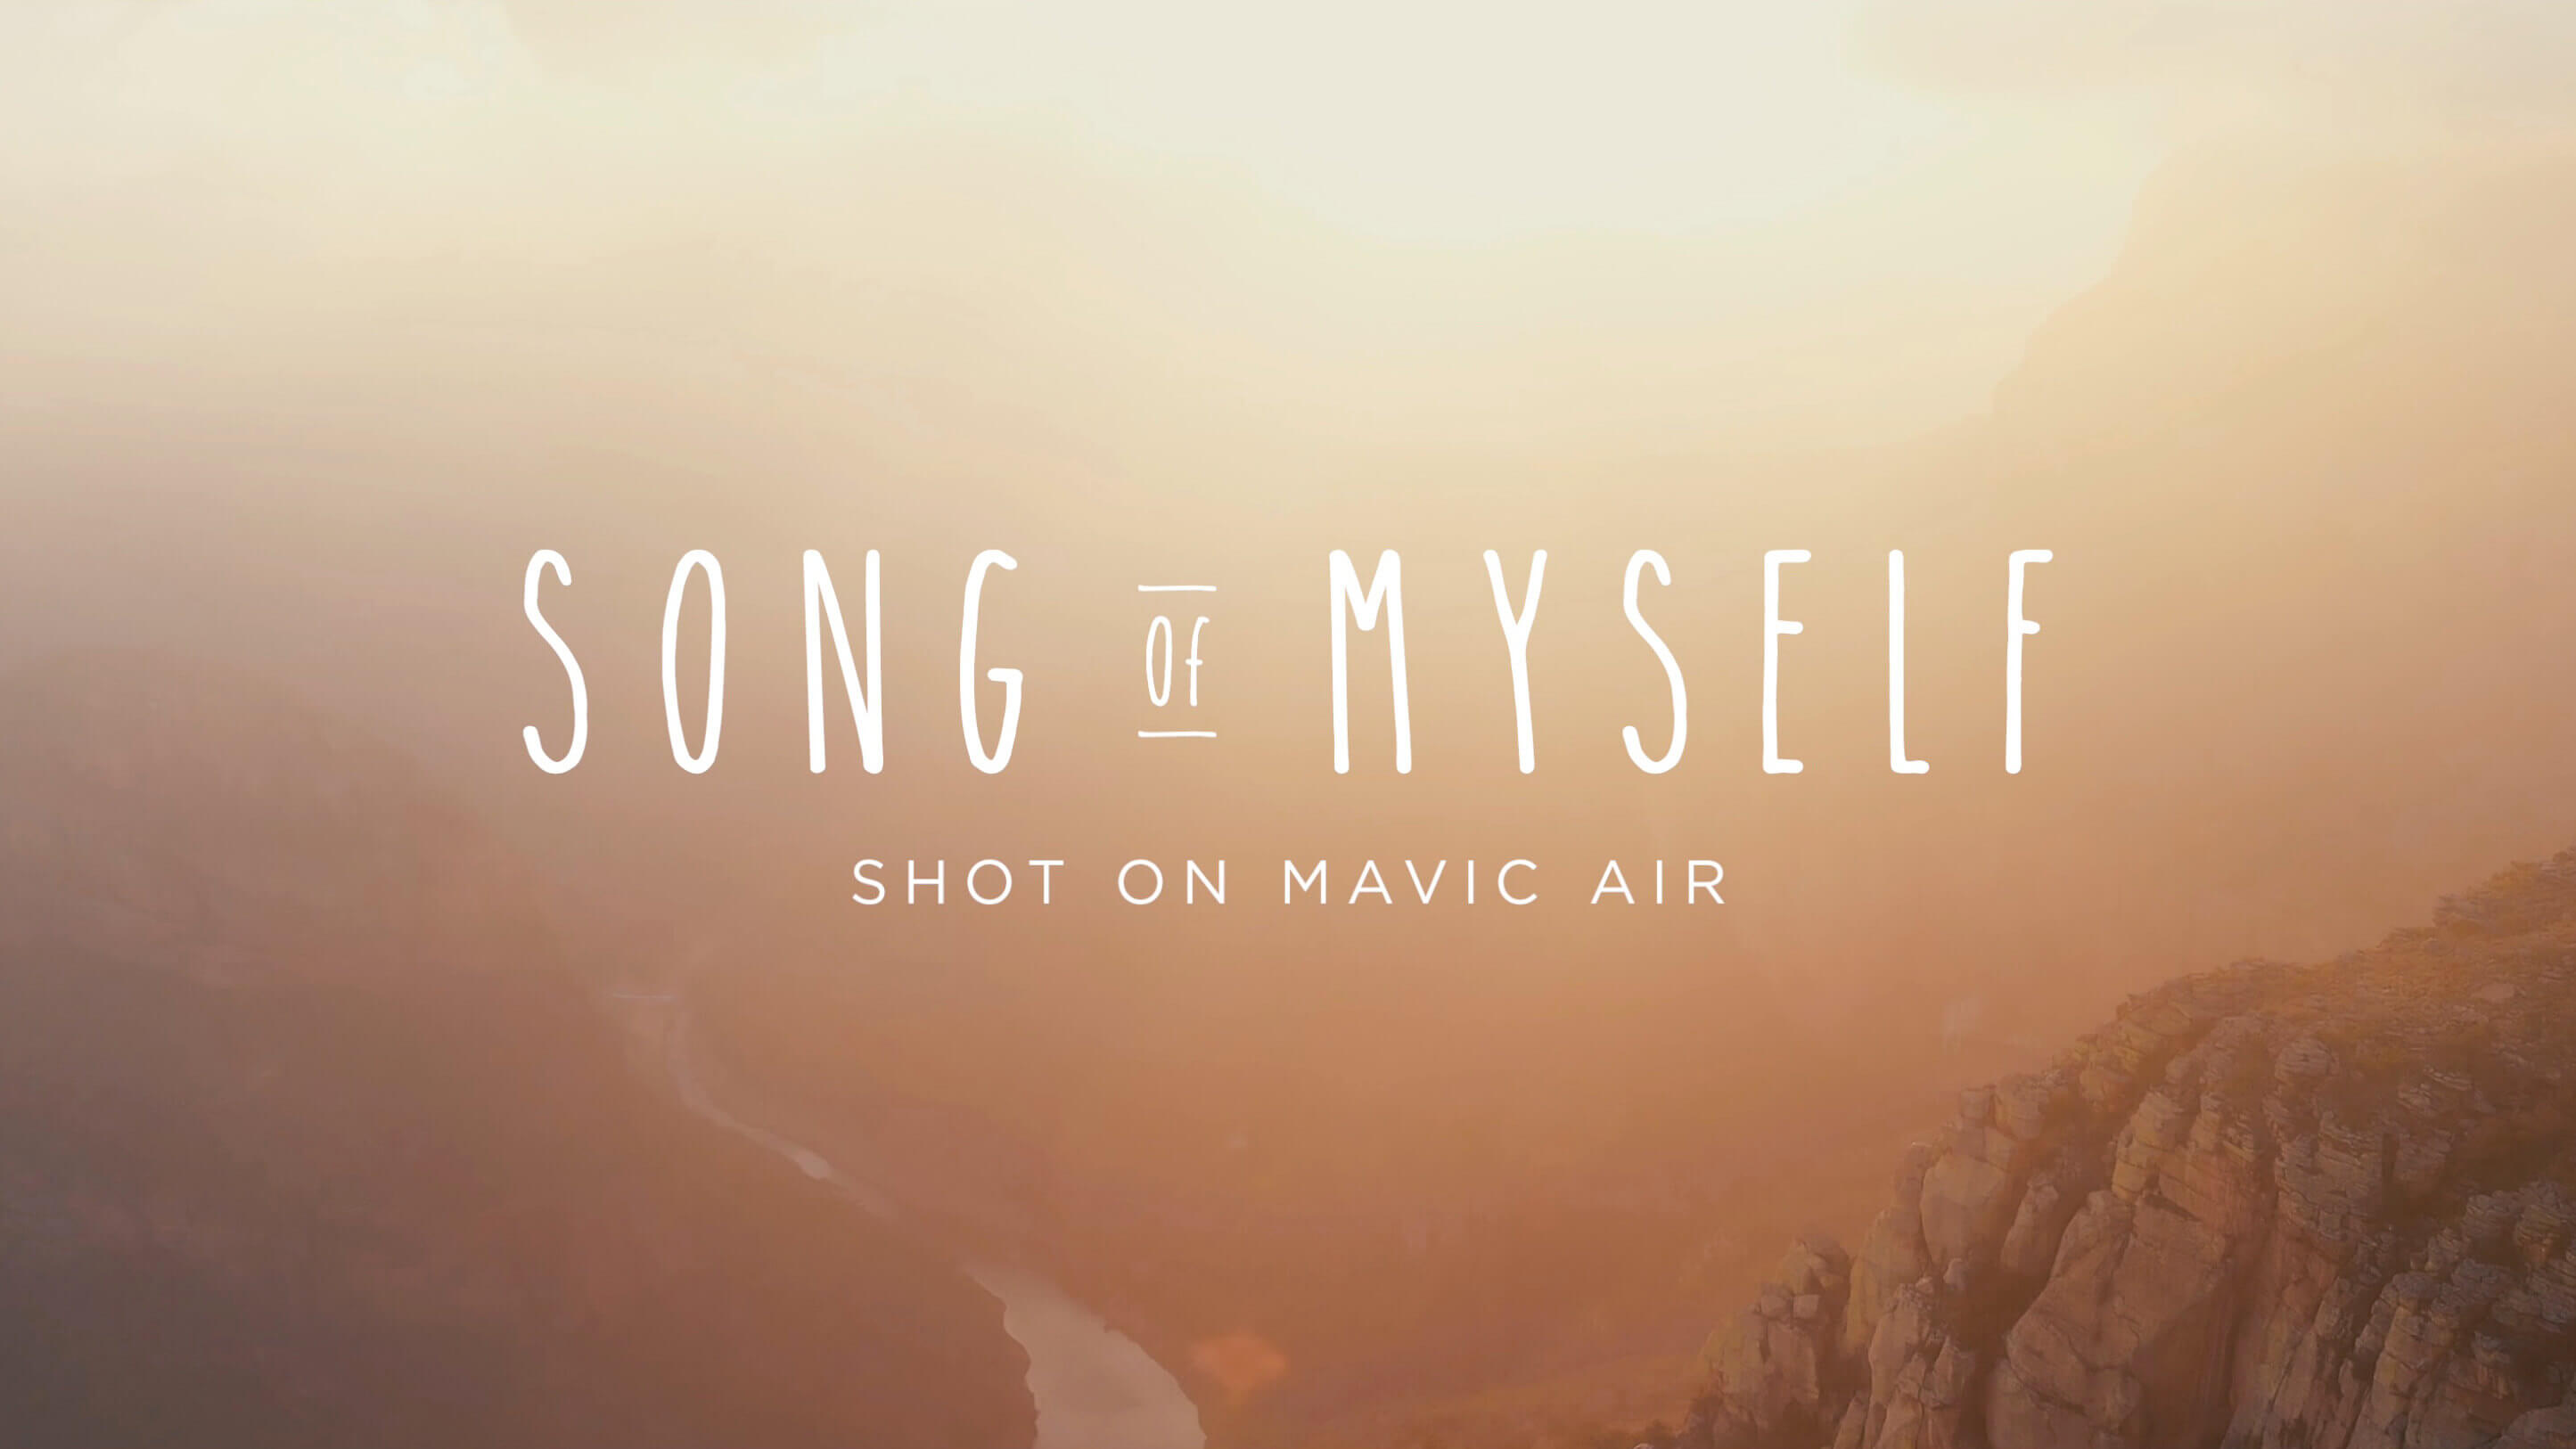 DJI - Song of Myself- Shot on Mavic Air